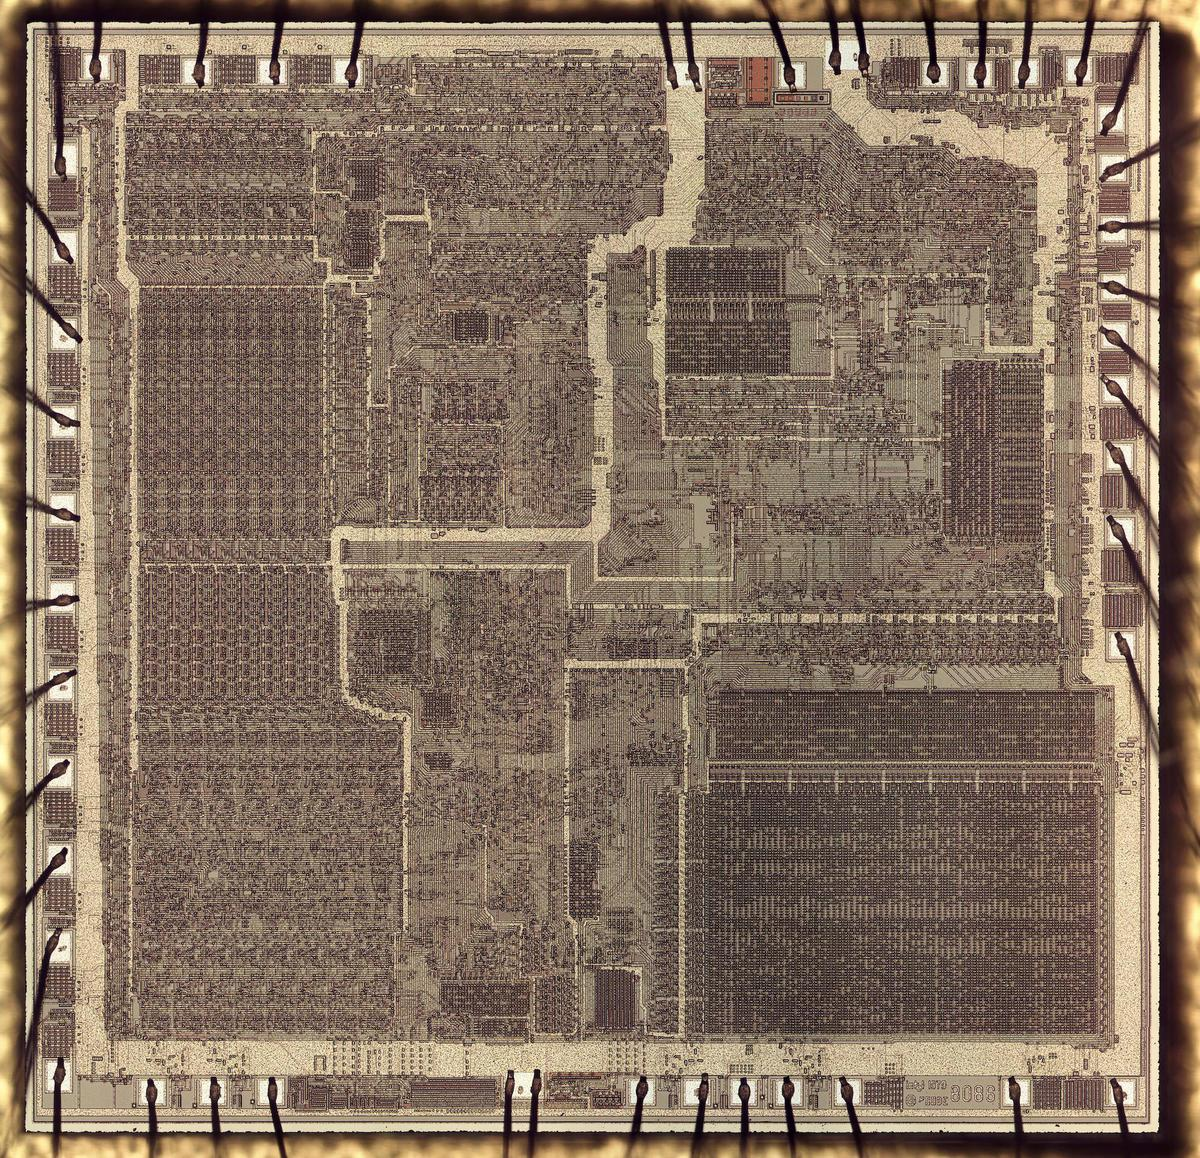 Die photo of a genuine 8086 chip.